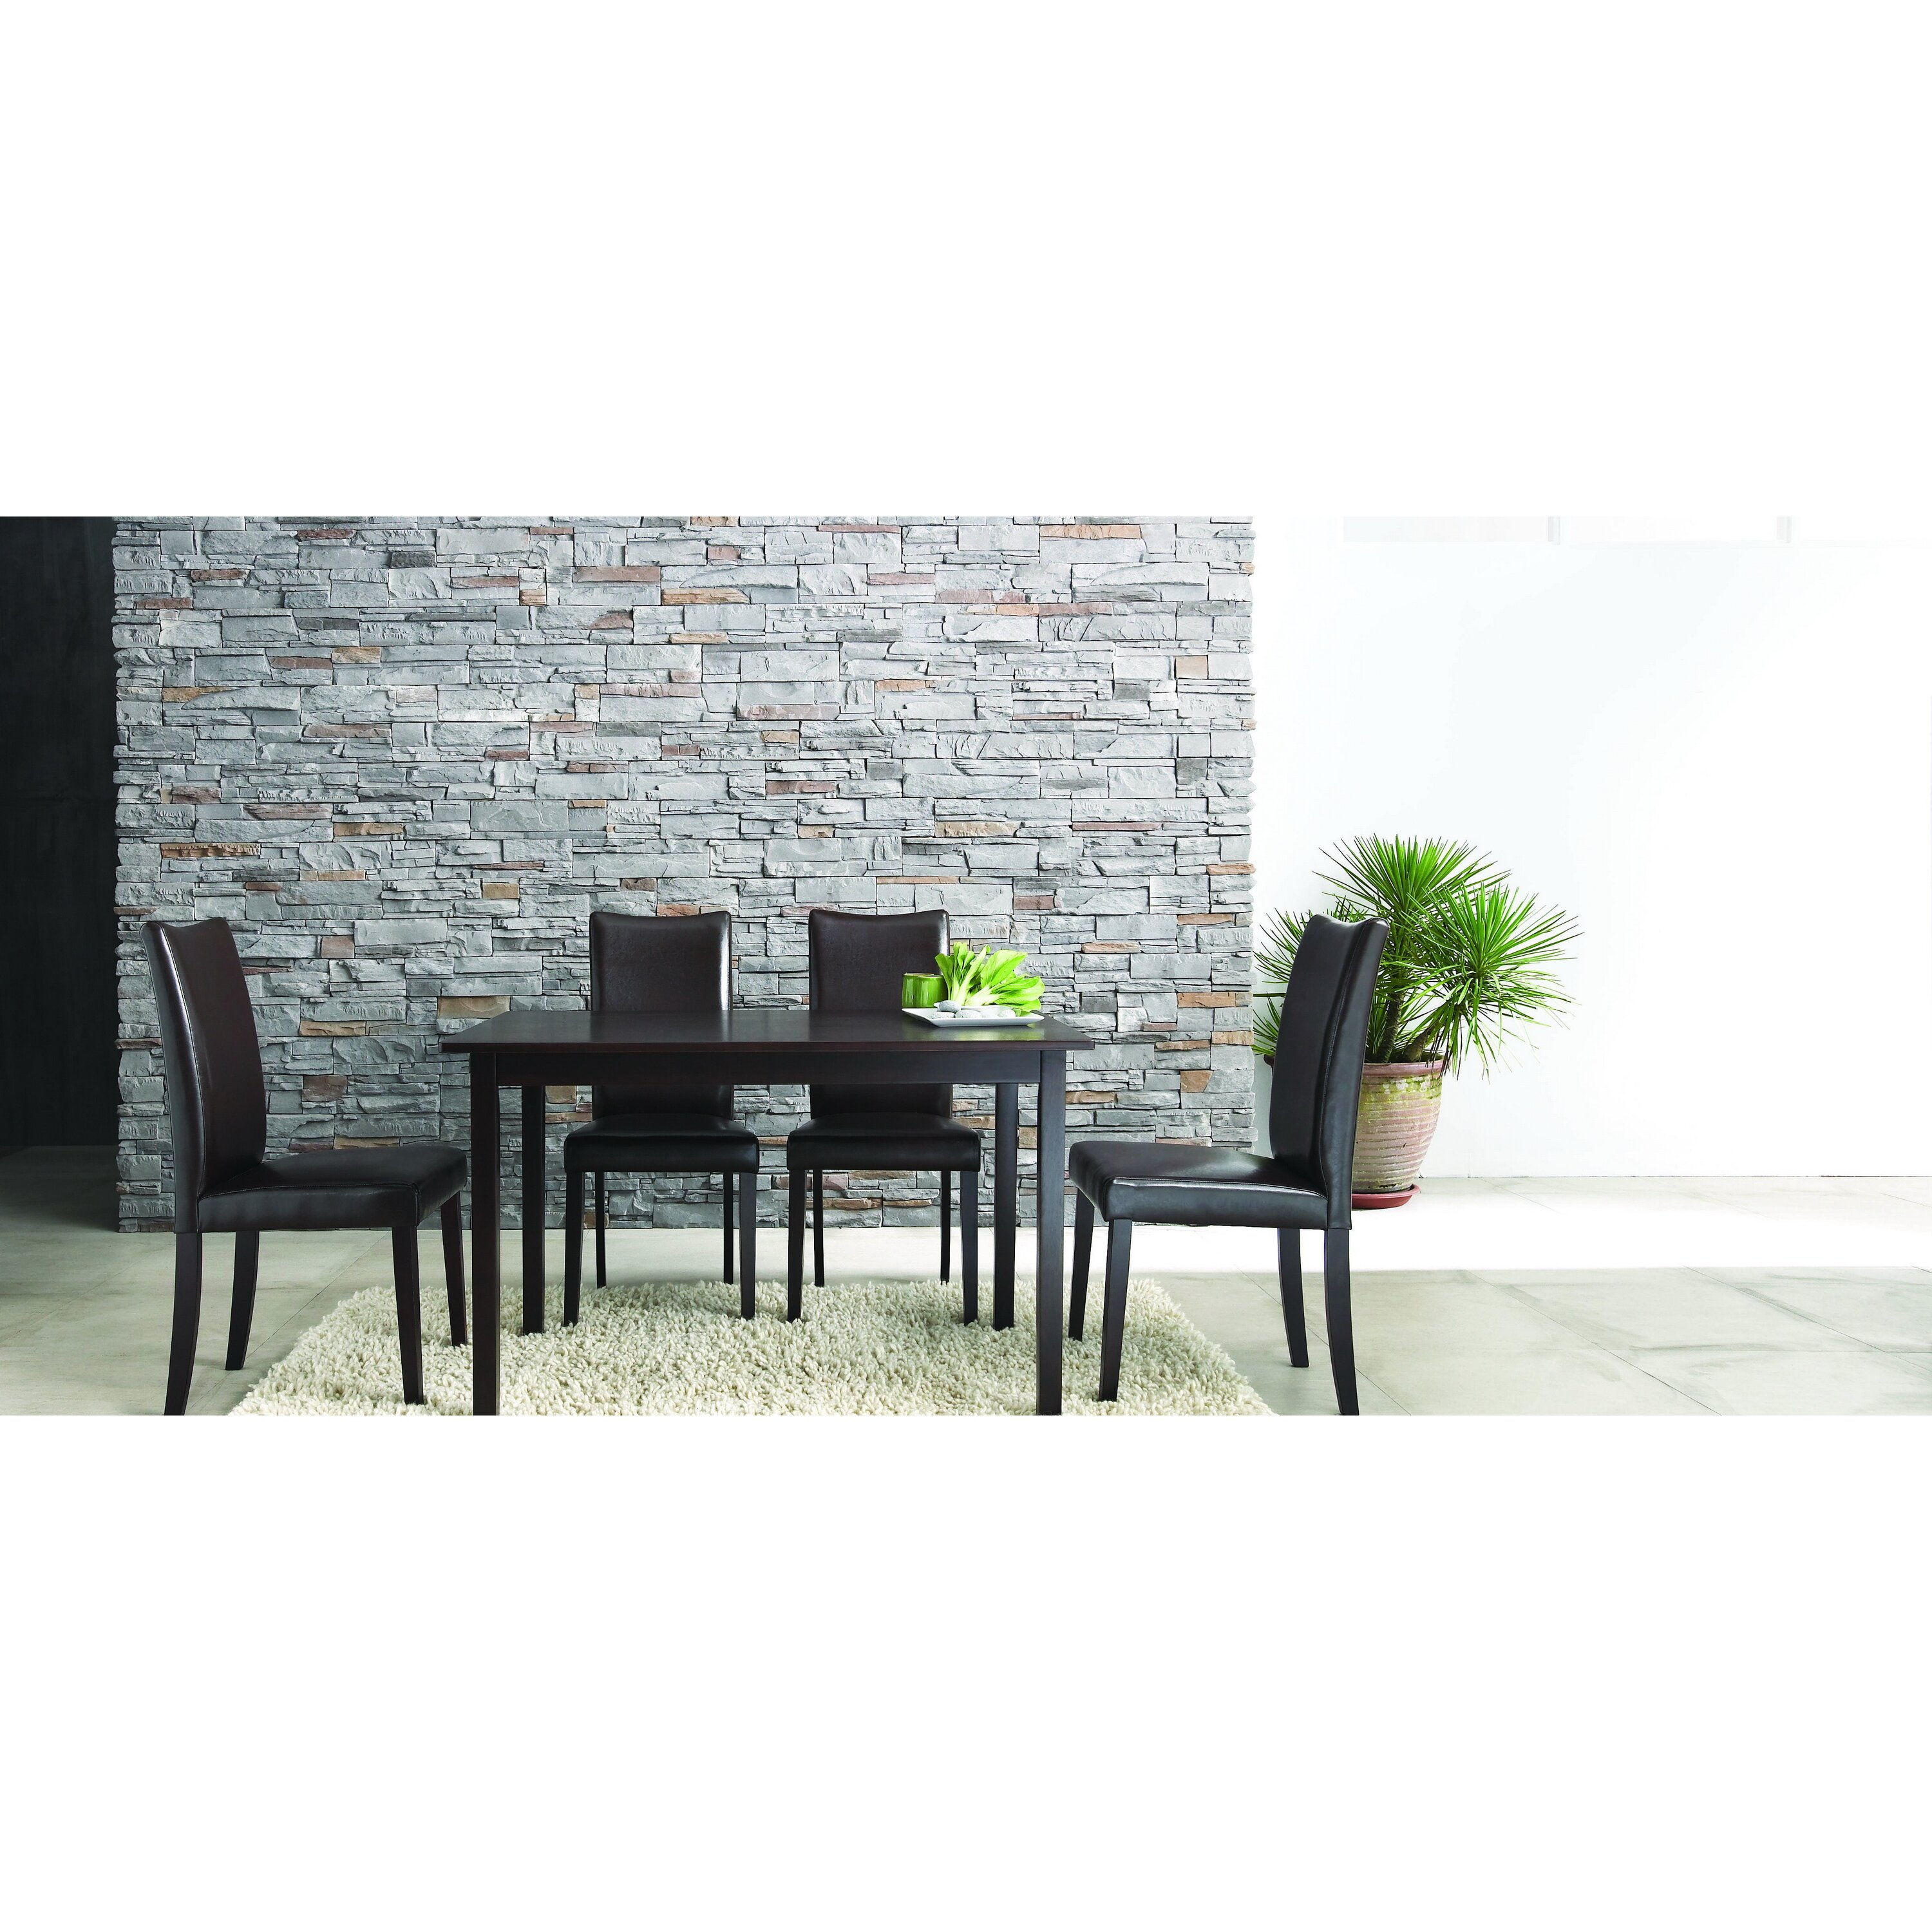 Table And Chair Sets Dinette Depot Images Eastindieshome  : Baxton Studio Berreman Dark Brown 5 Piece Modern Dining Set from favefaves.com size 3000 x 3000 jpeg 1336kB